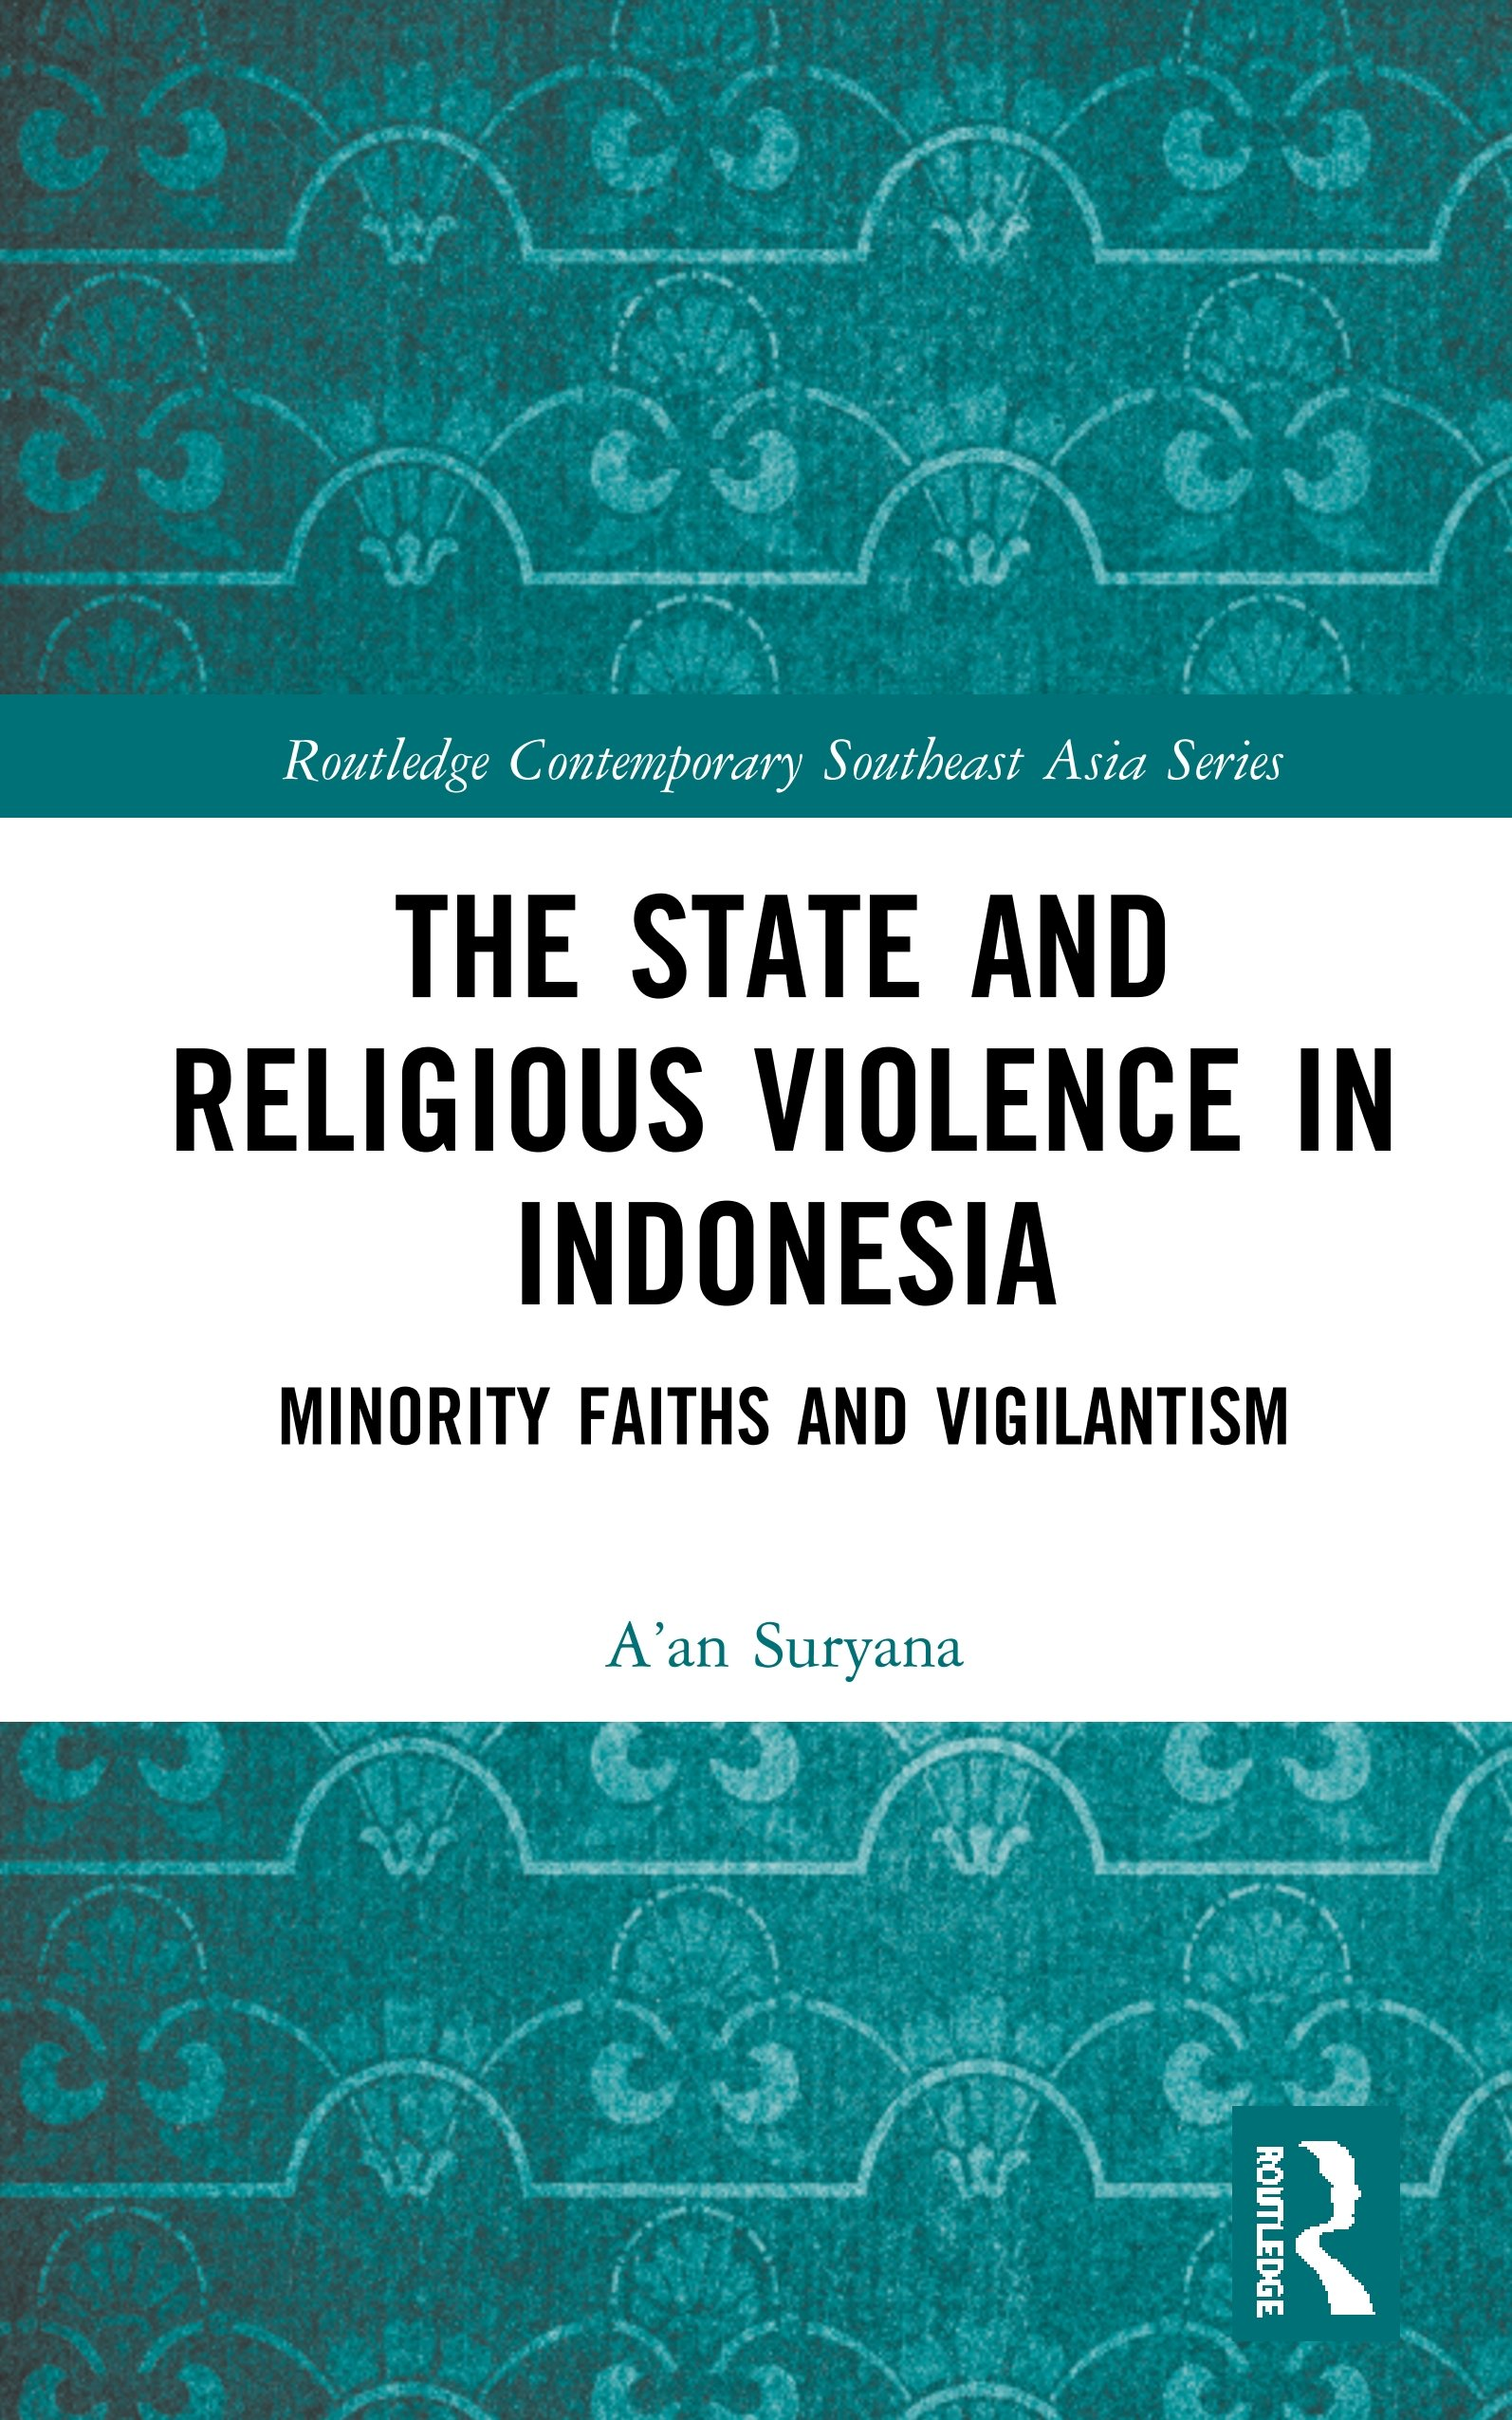 The State and Religious Violence in Indonesia: Minority Faiths and Vigilantism book cover